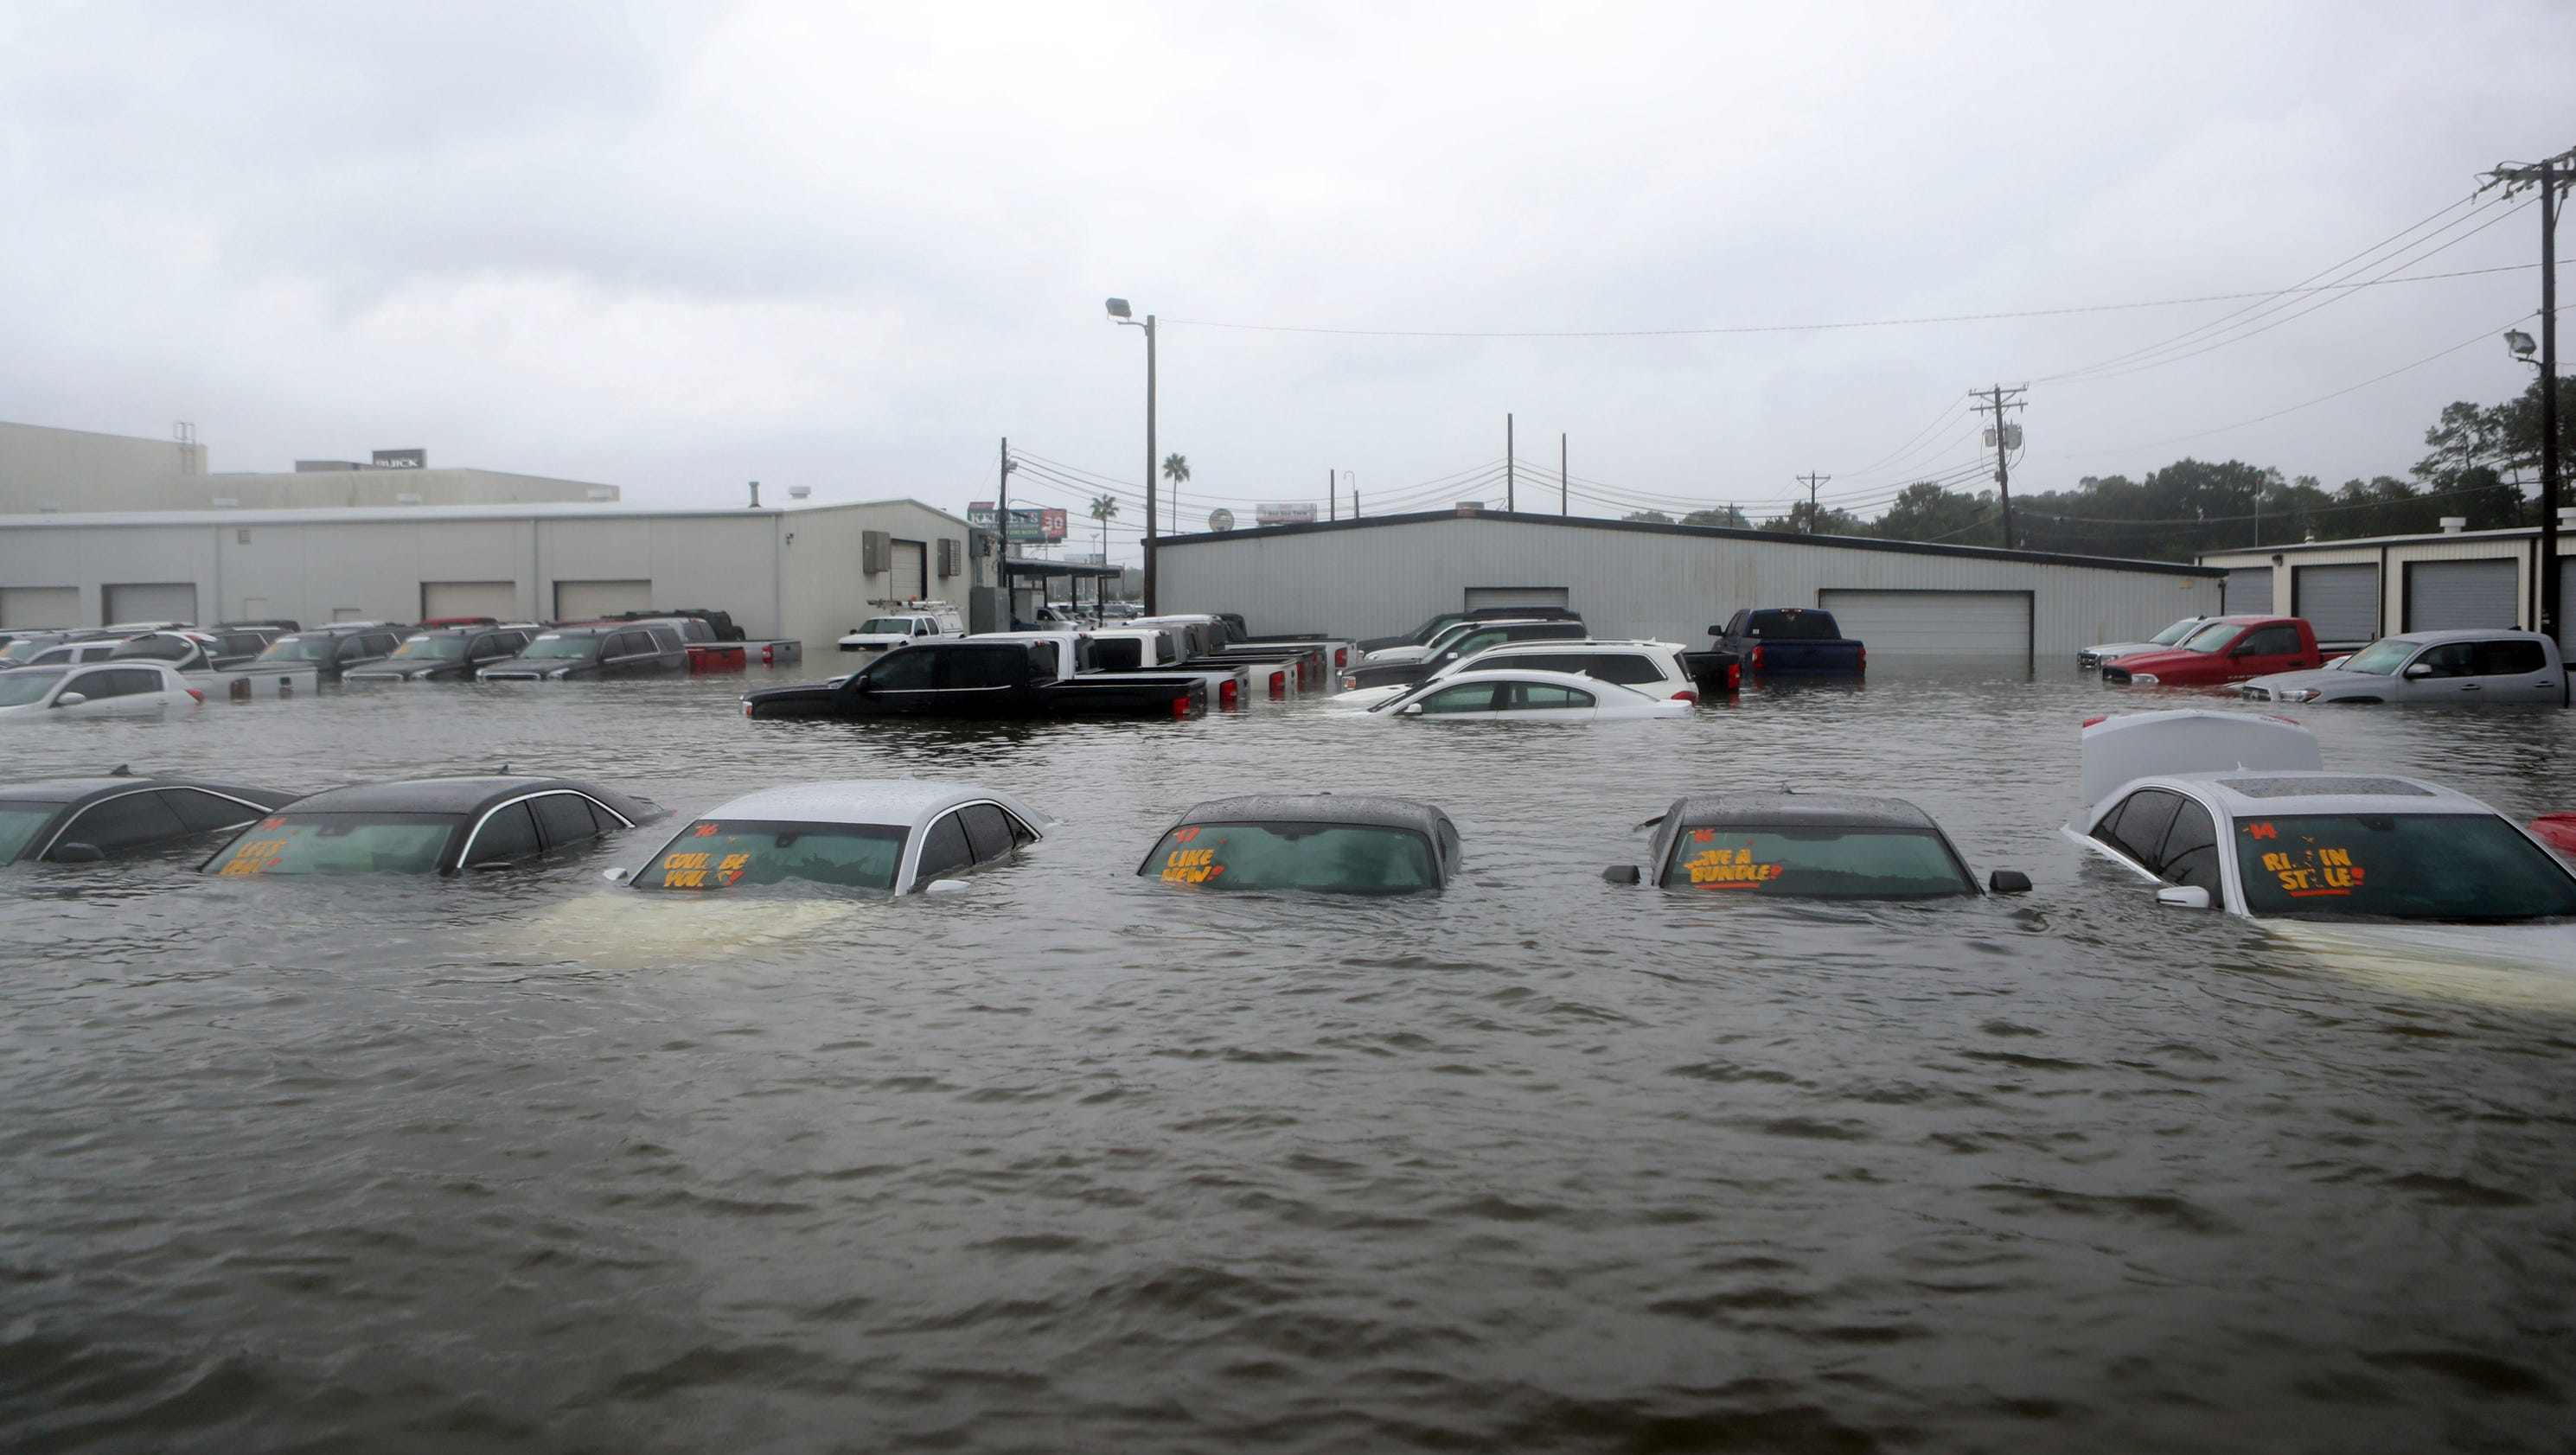 Ford Dealerships In Houston >> Hurricane Harvey weakens U.S. auto sales until cars can be replaced